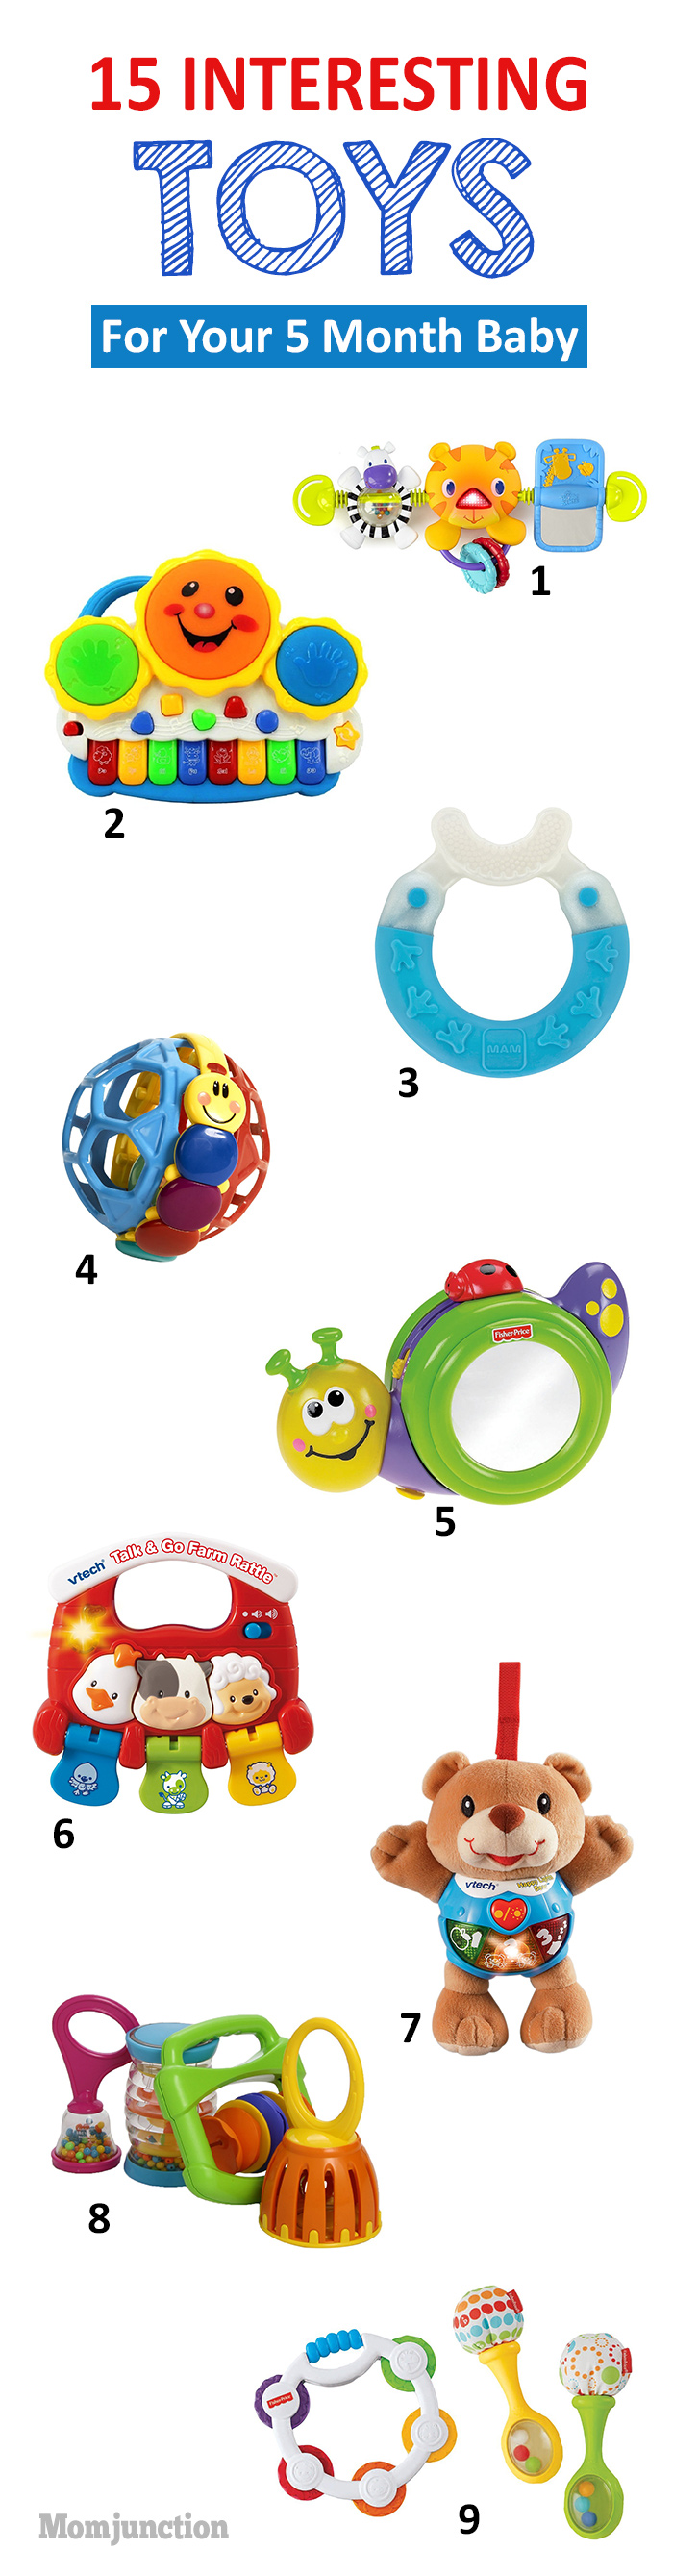 15 Interesting Toys For Your 5 Month Old Baby